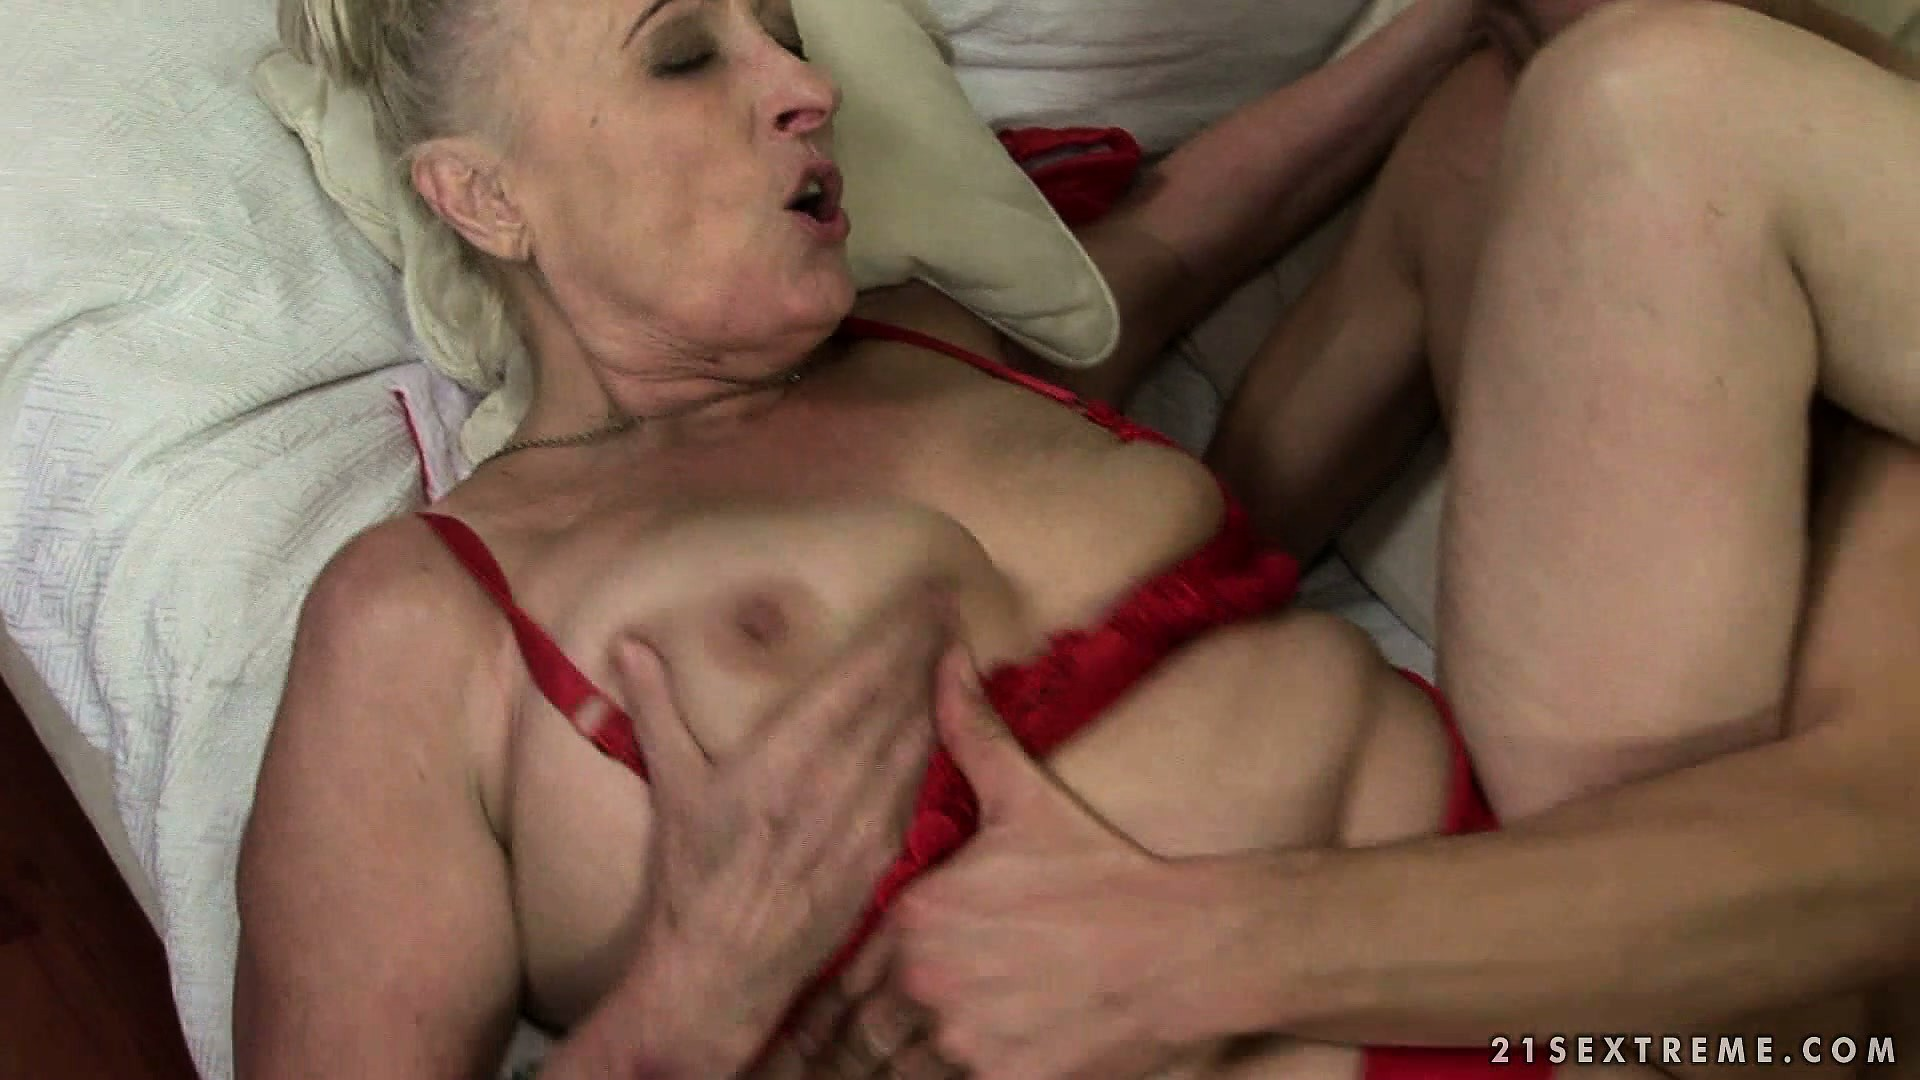 Porn Tube of Raunchy Fat Granny In Red Lingerie Gets Her Cunt Worked Out Well